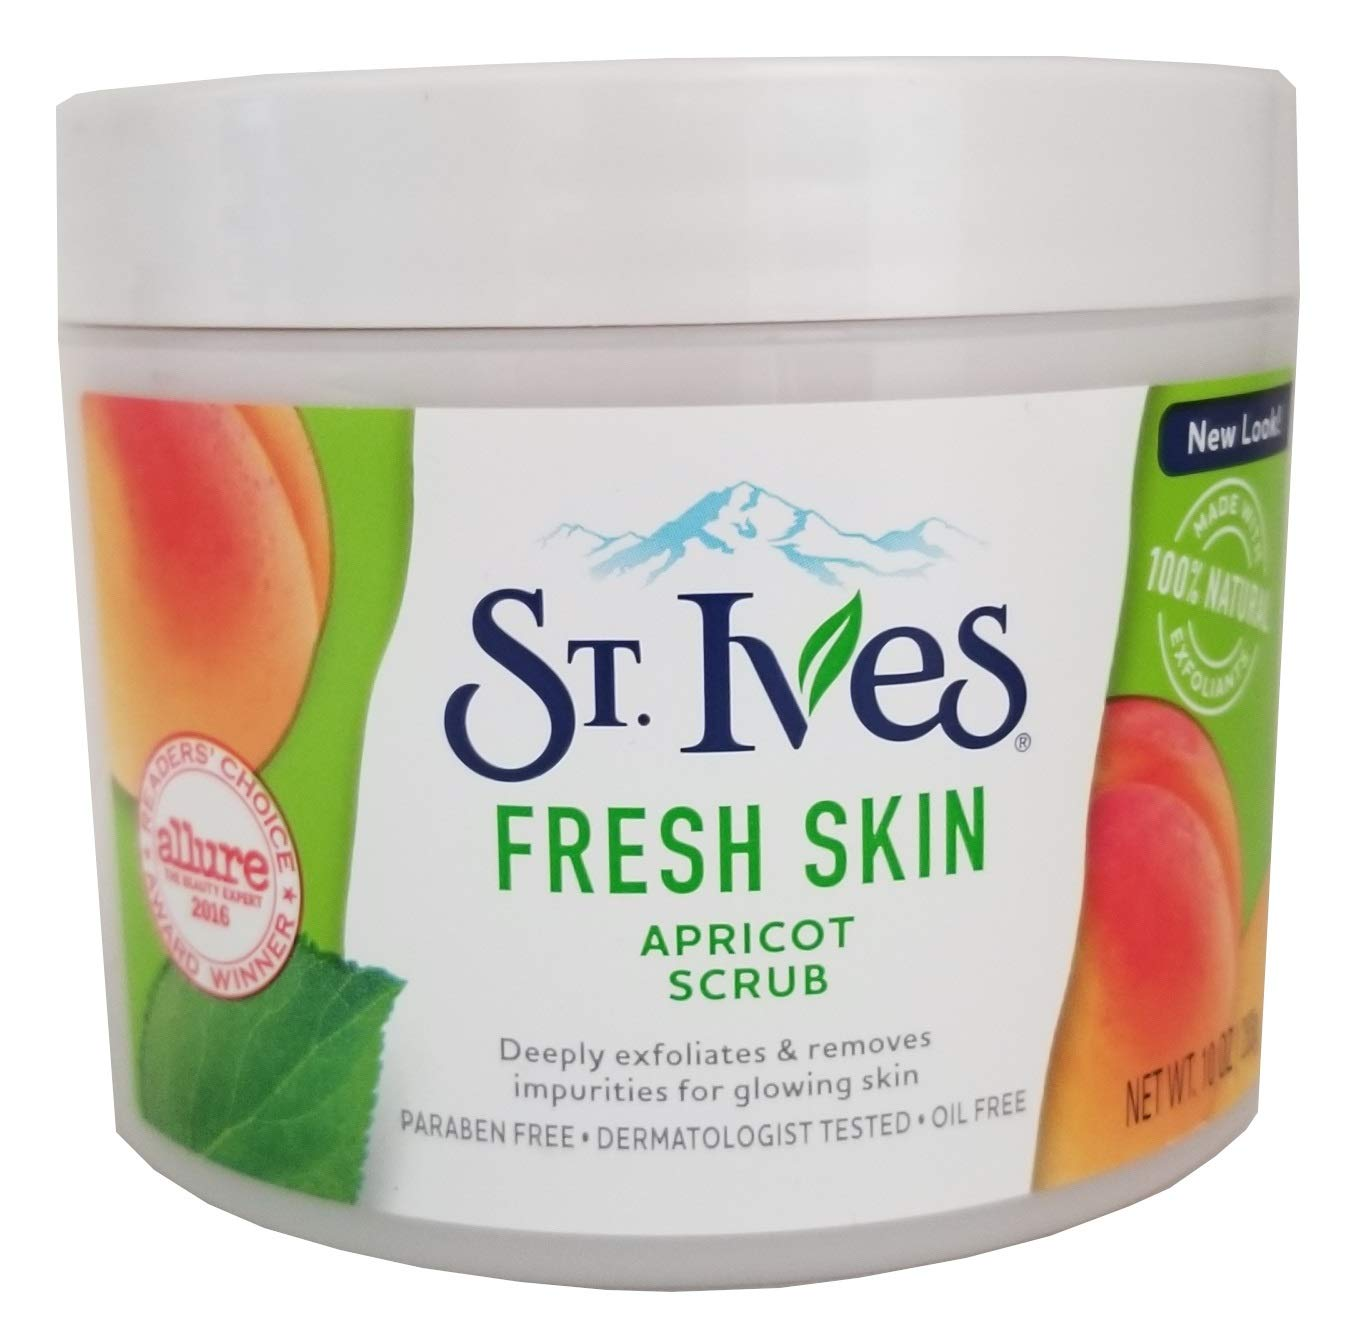 St. Ives Fresh Skin Exfoliating Apricot Scrub, 283ml, 10 fl.oz. (Pack of 3): Beauty